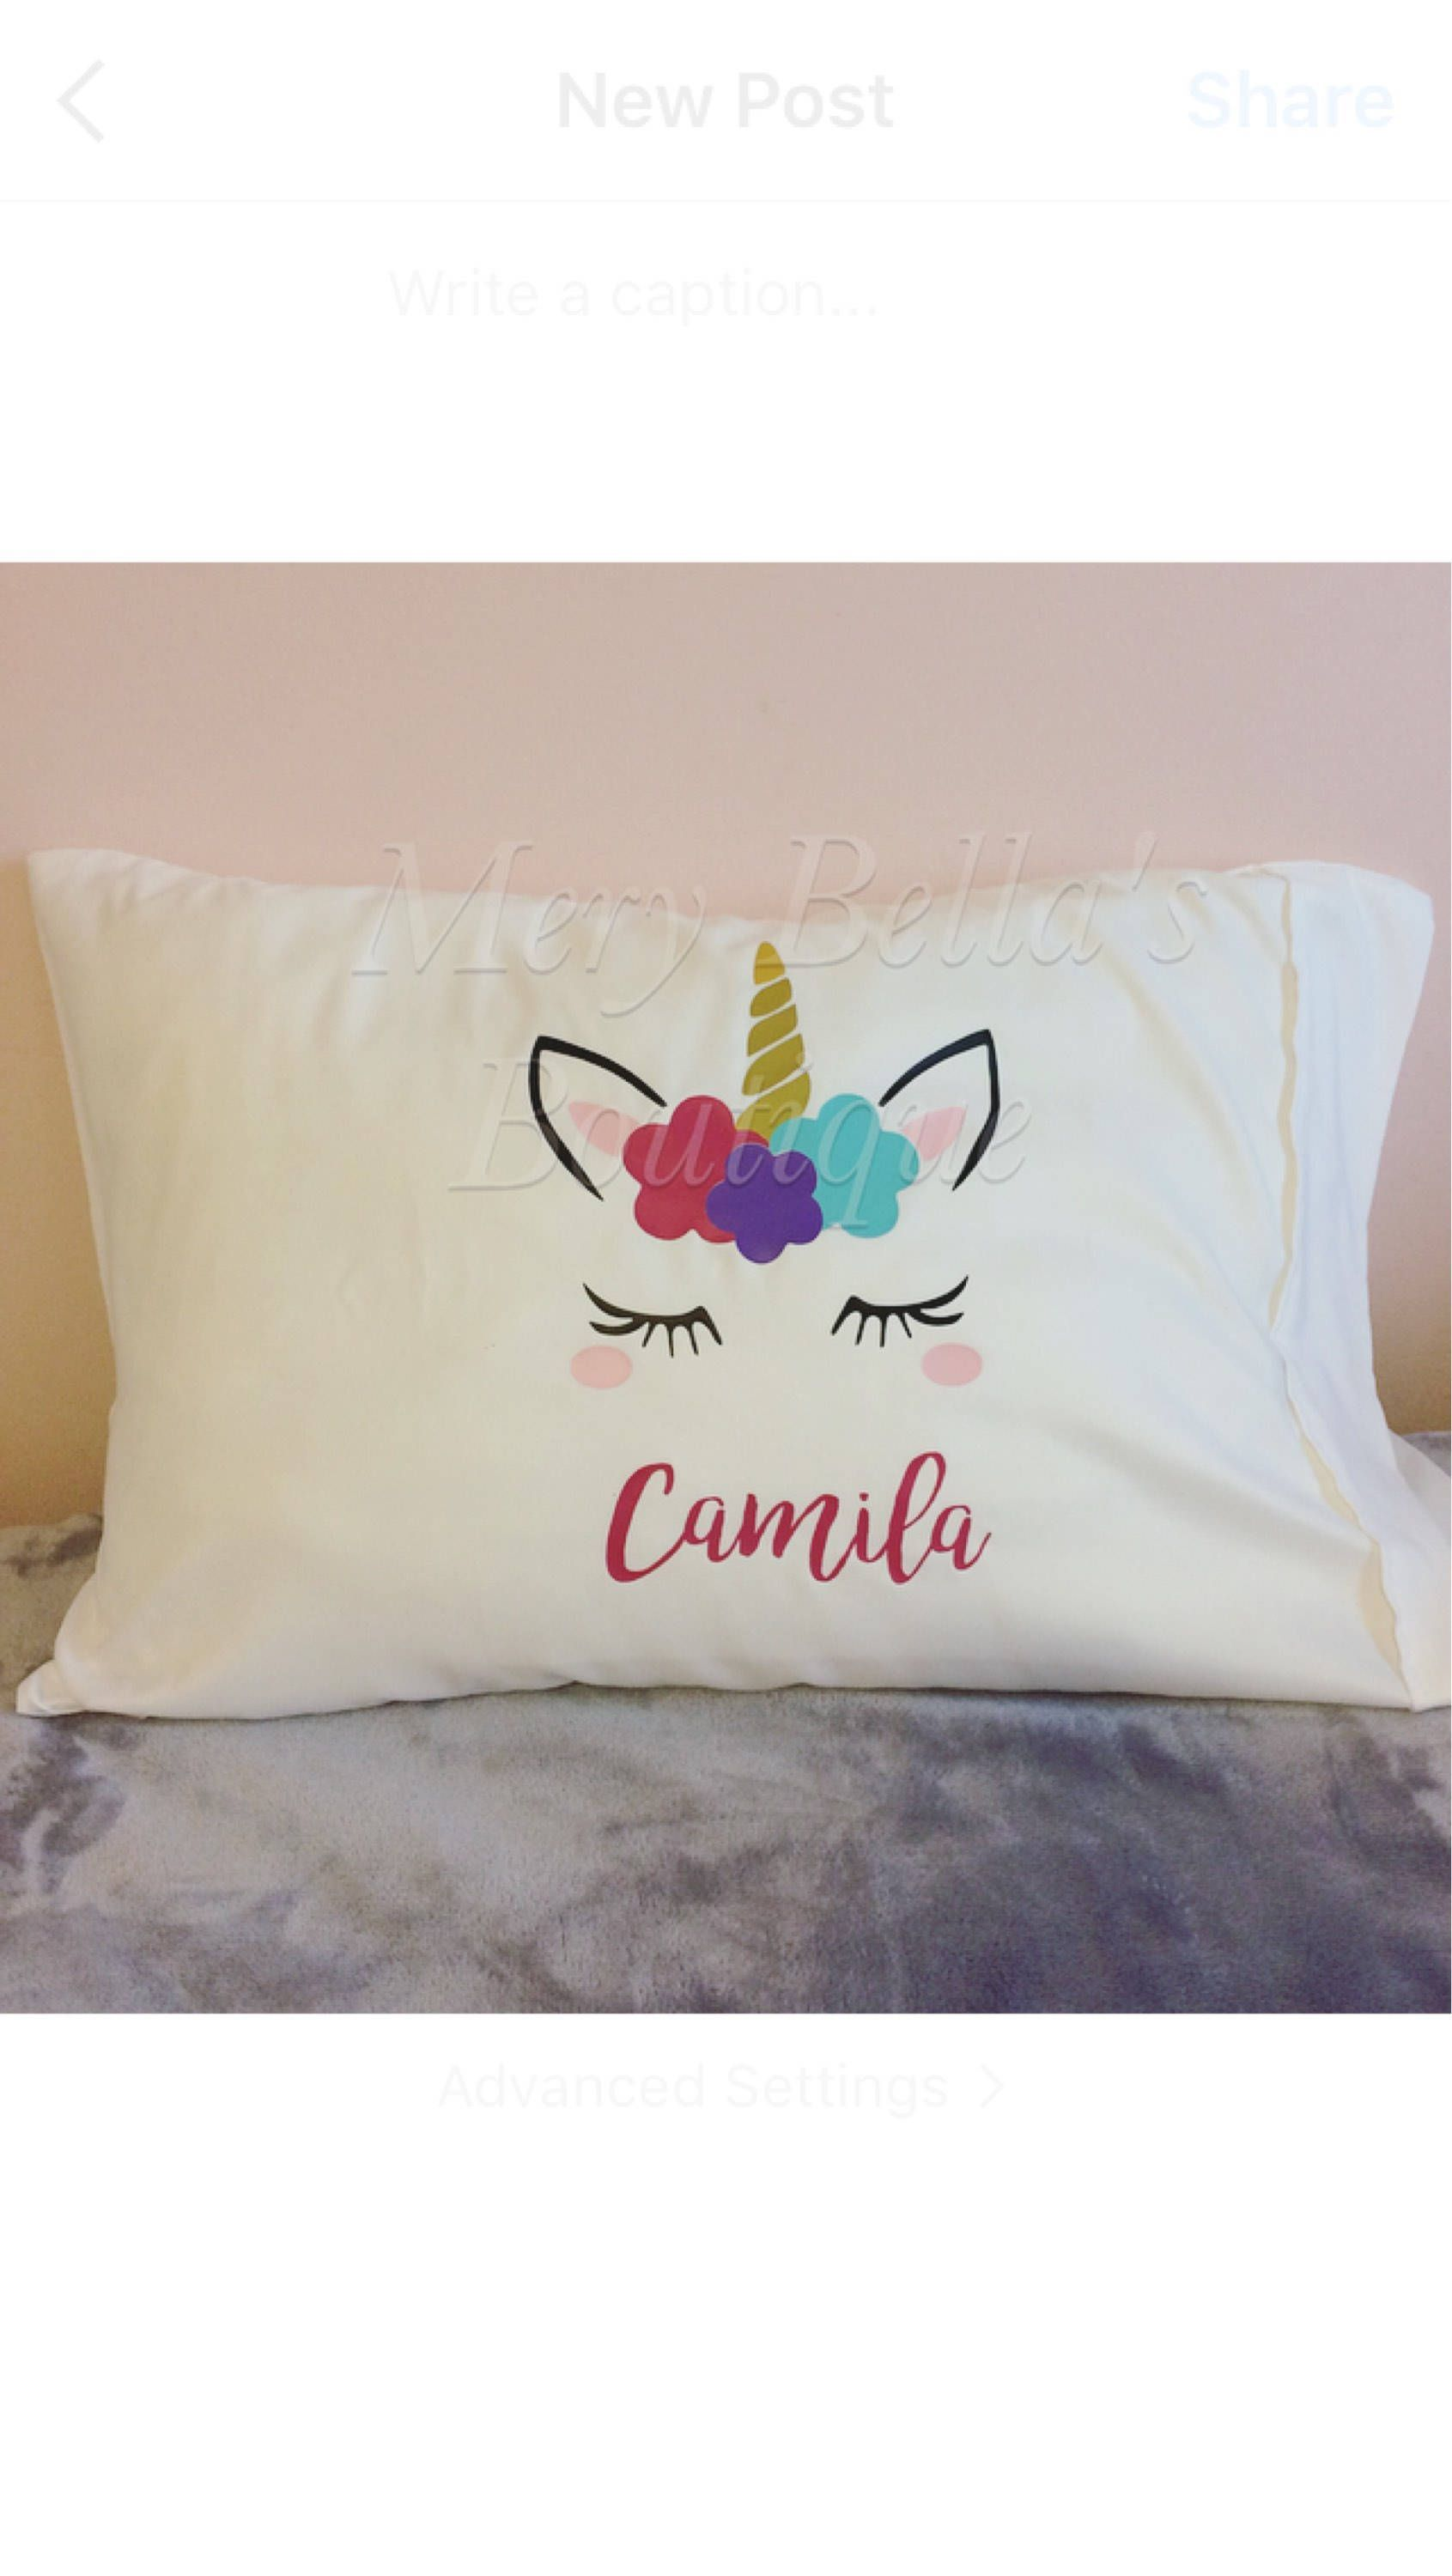 wedding gift years pair customized pillowcase couples cases customs and anniversary print your date groom customised pillow go bride set forever little pretty pillowcases to personalised down name cotton